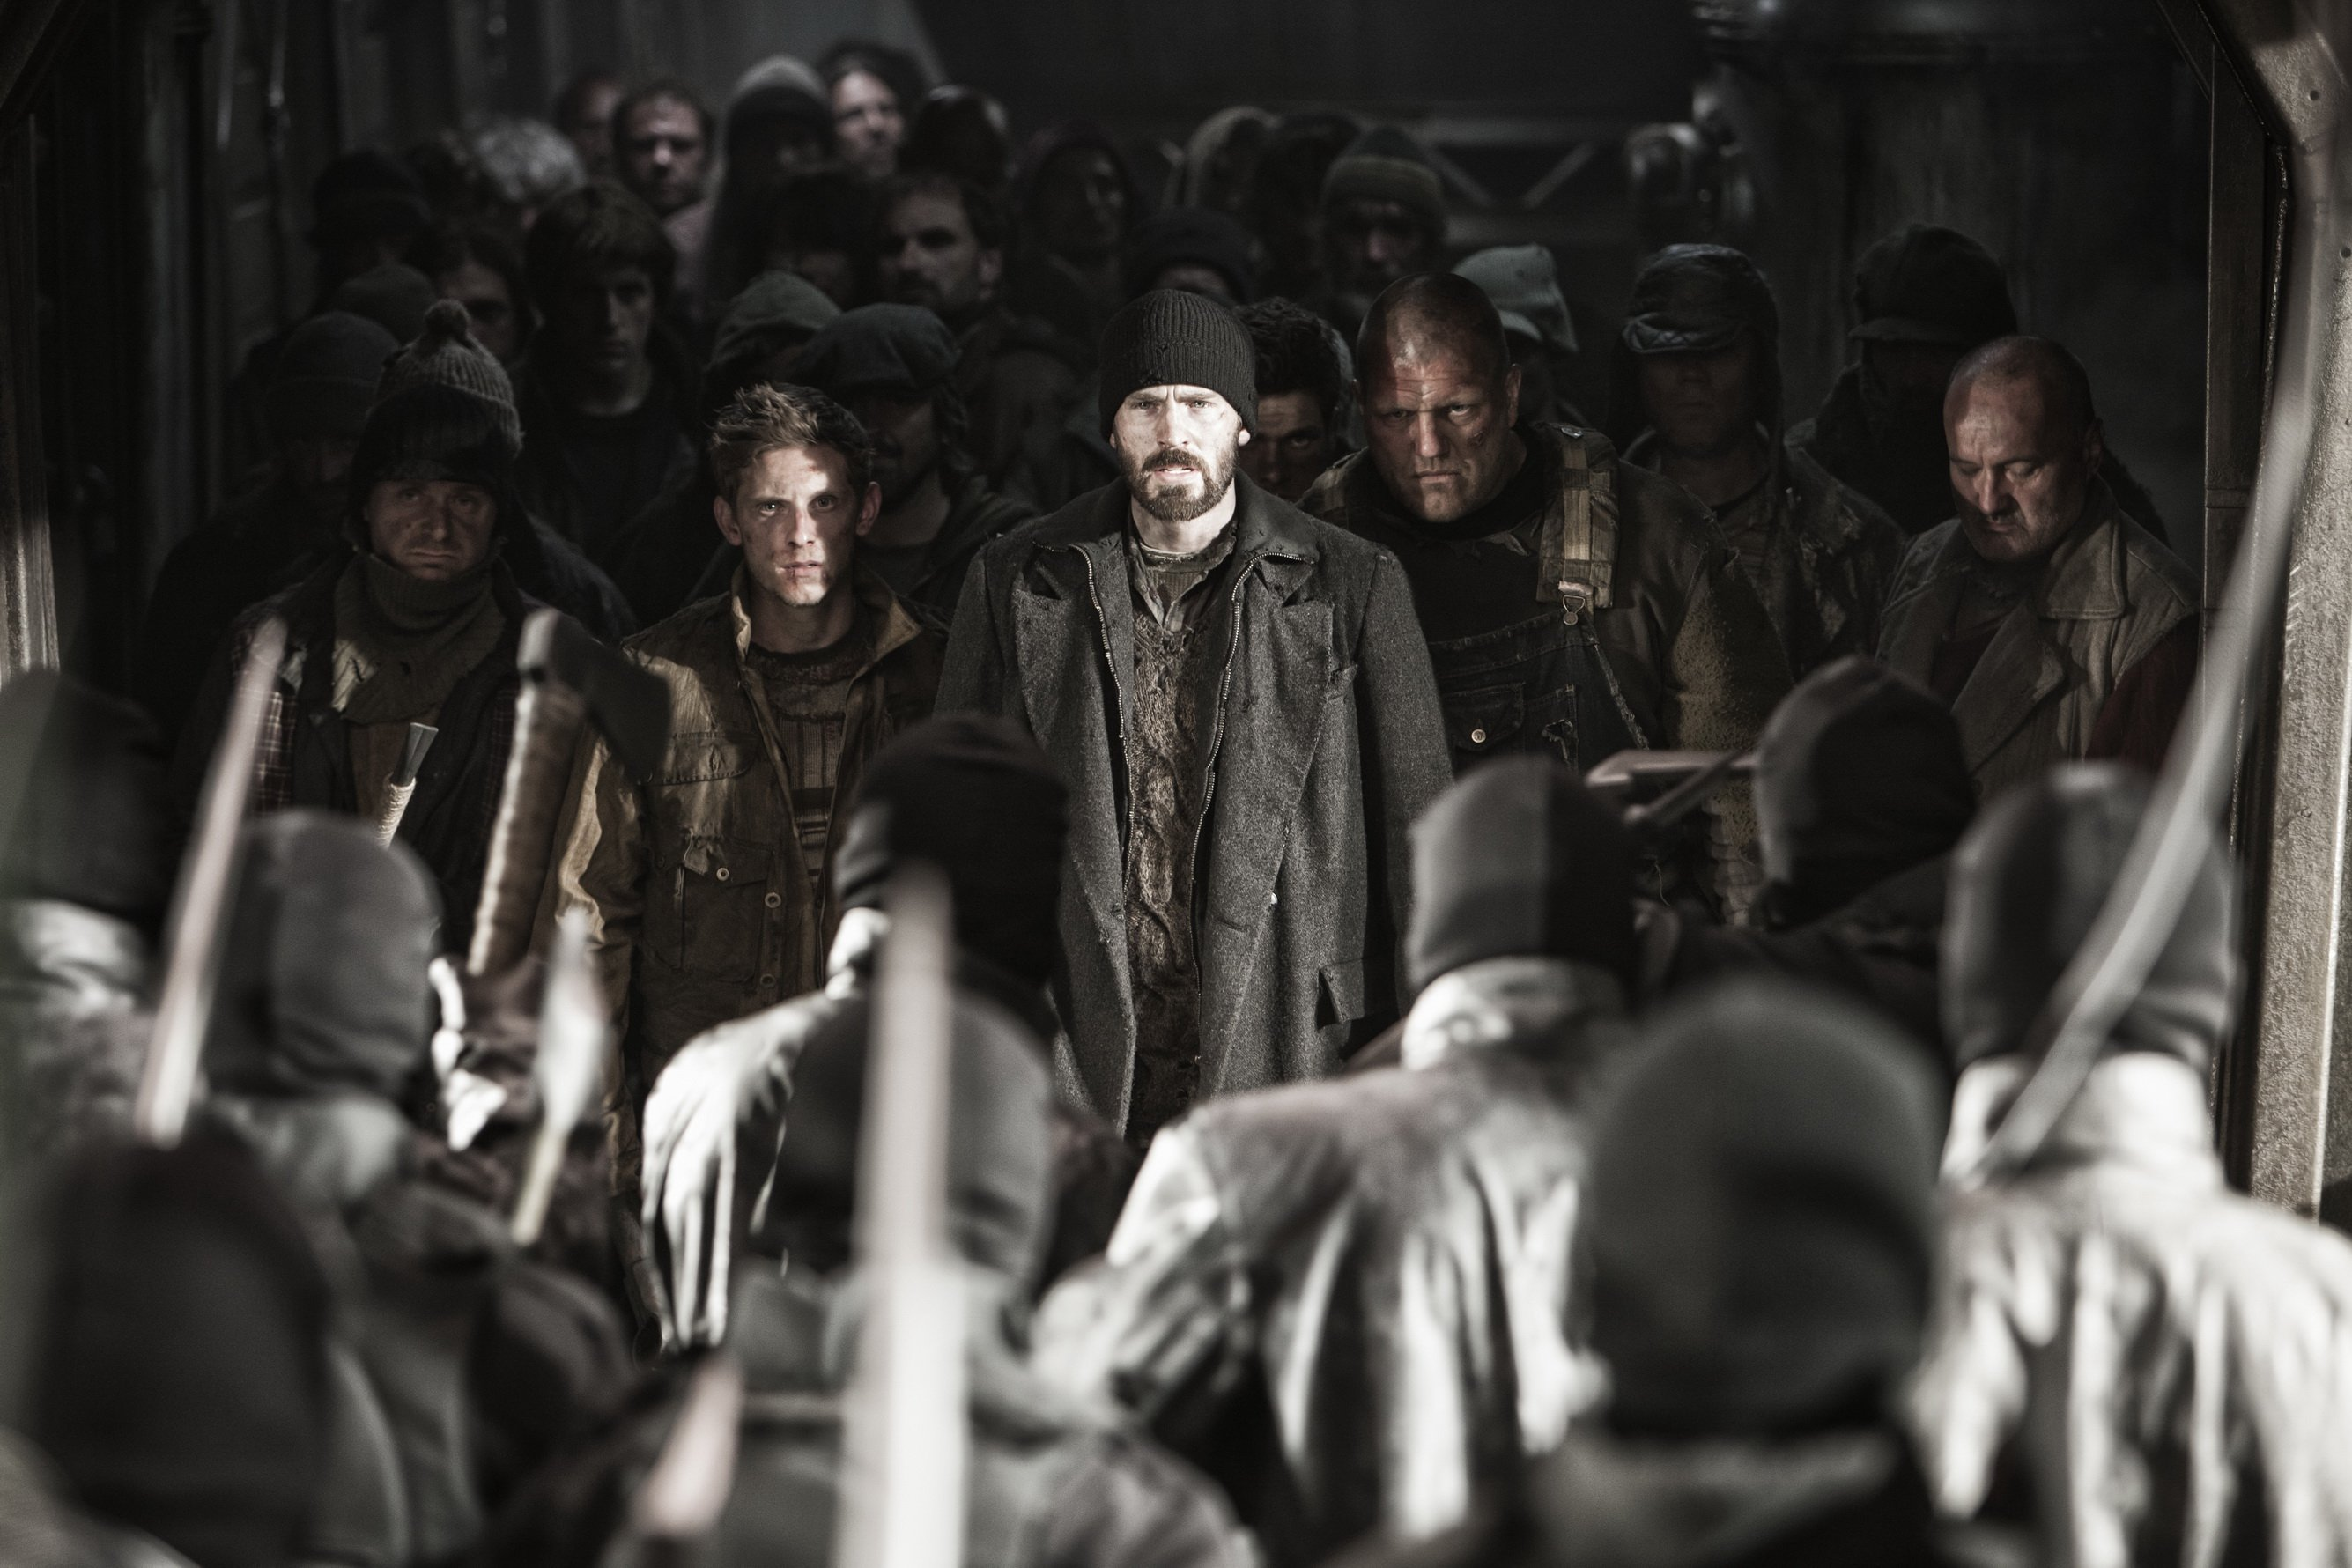 The Top Ten Winter Misery Genre Movies - Snowpiercer (2013)